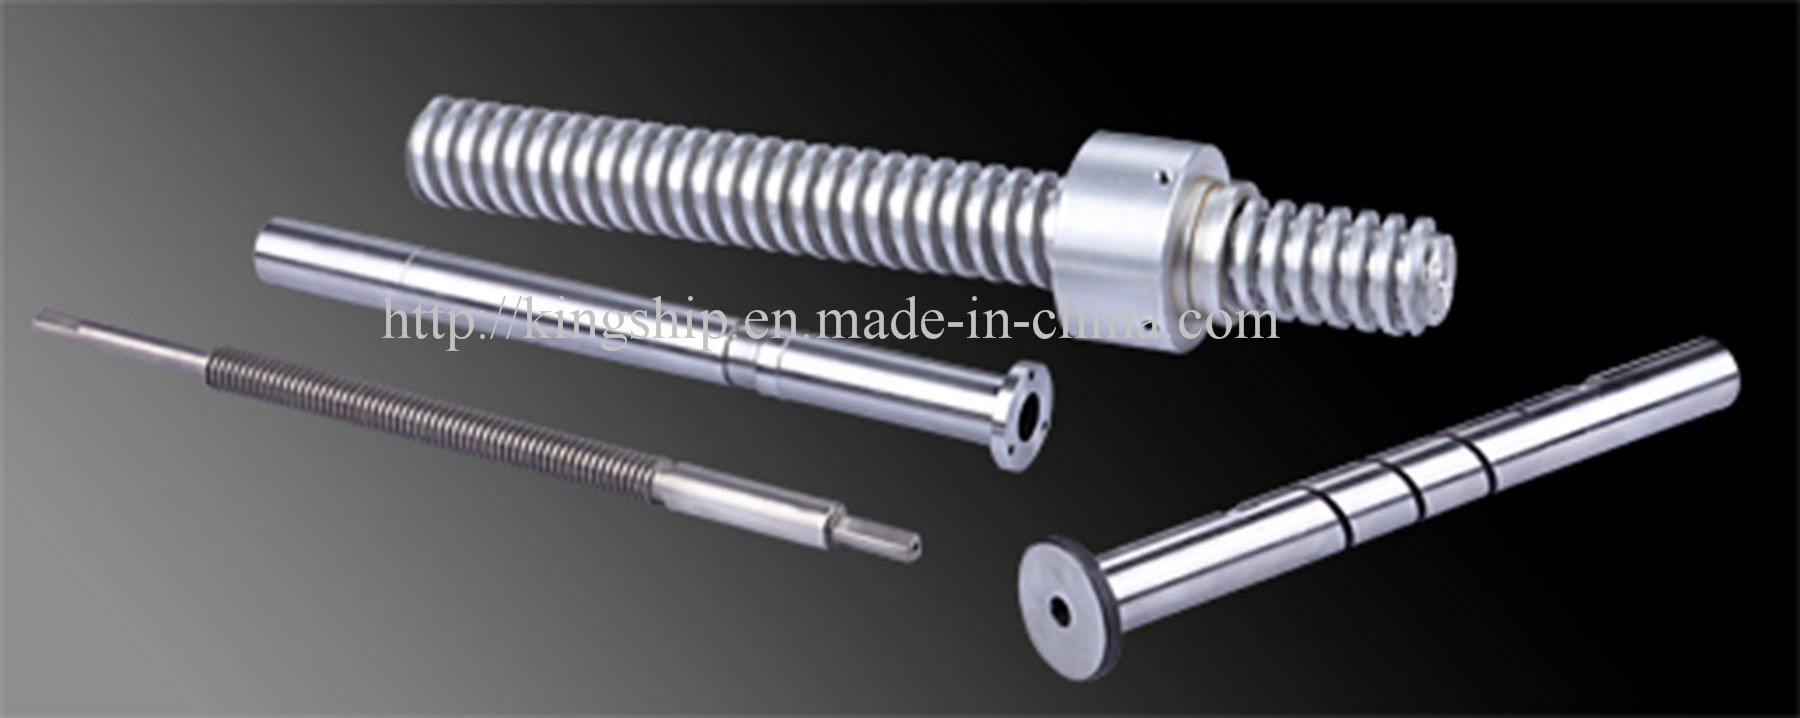 Cusotmized CNC Metal Processing Machinery Parts